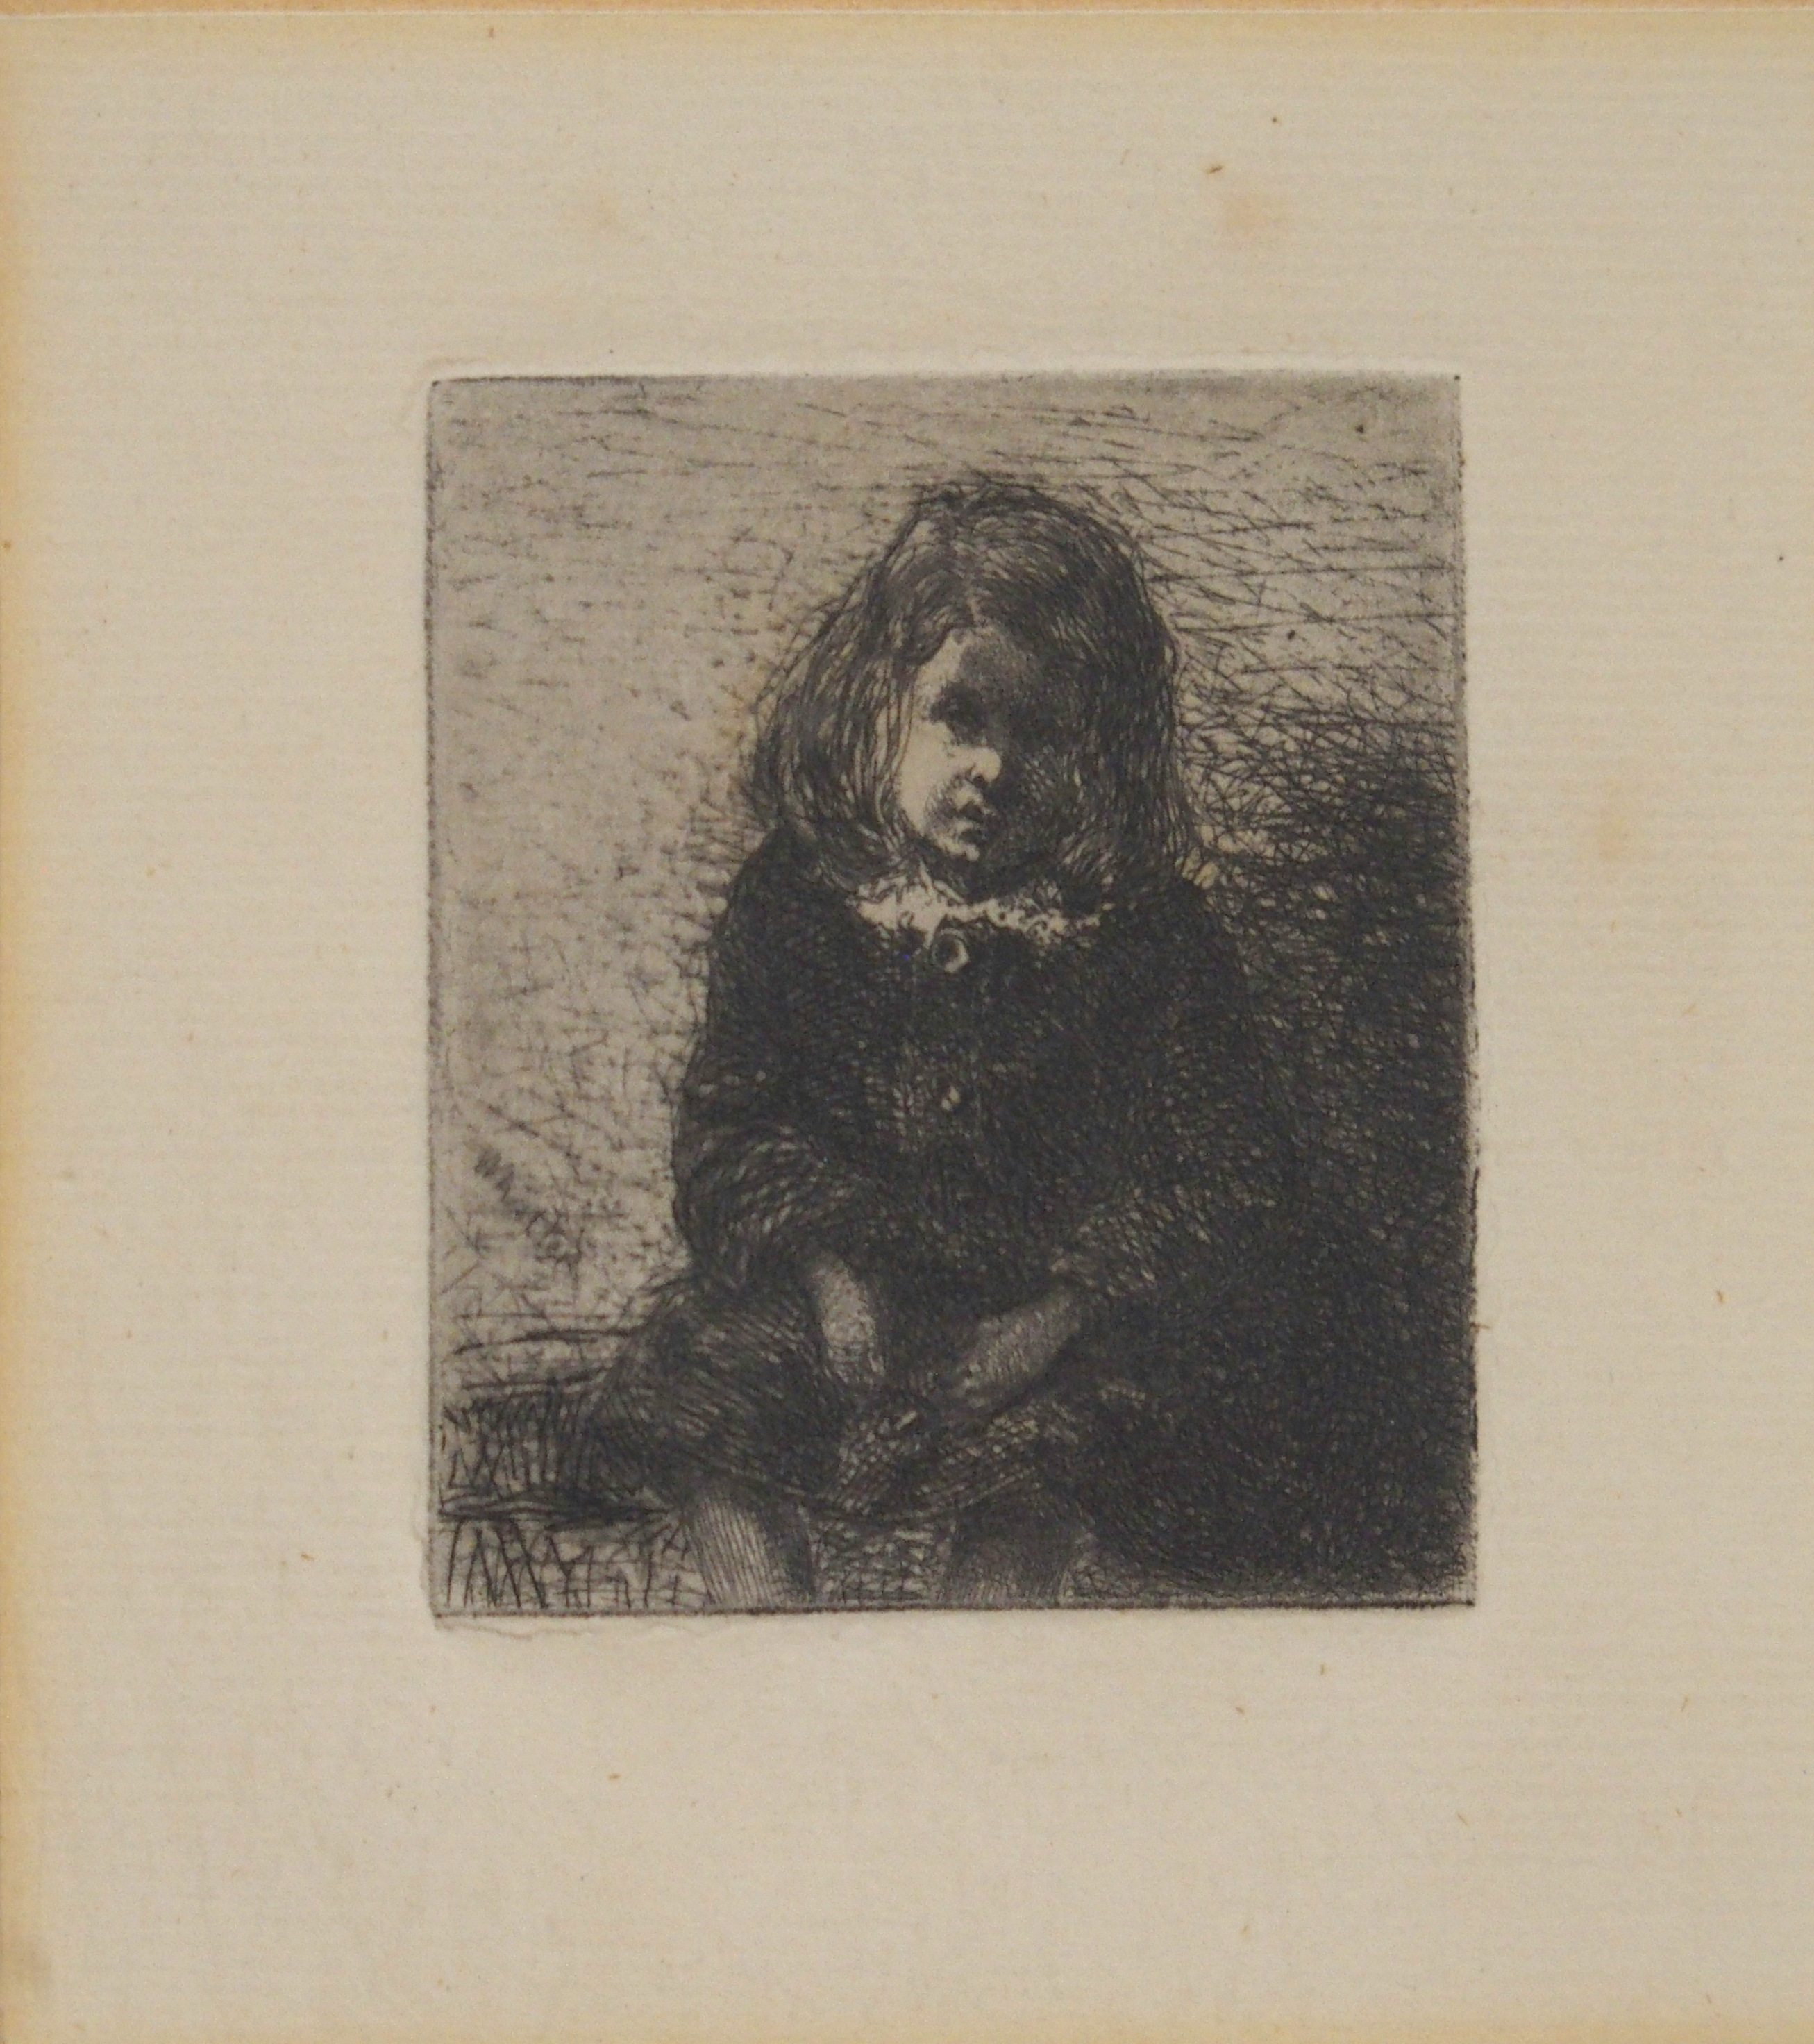 JAMES ABBOTT MCNEILL WHISTLER RBA (AMERICAN 1834-1903) GIRL SEATED etching, 6 x 5cm Condition